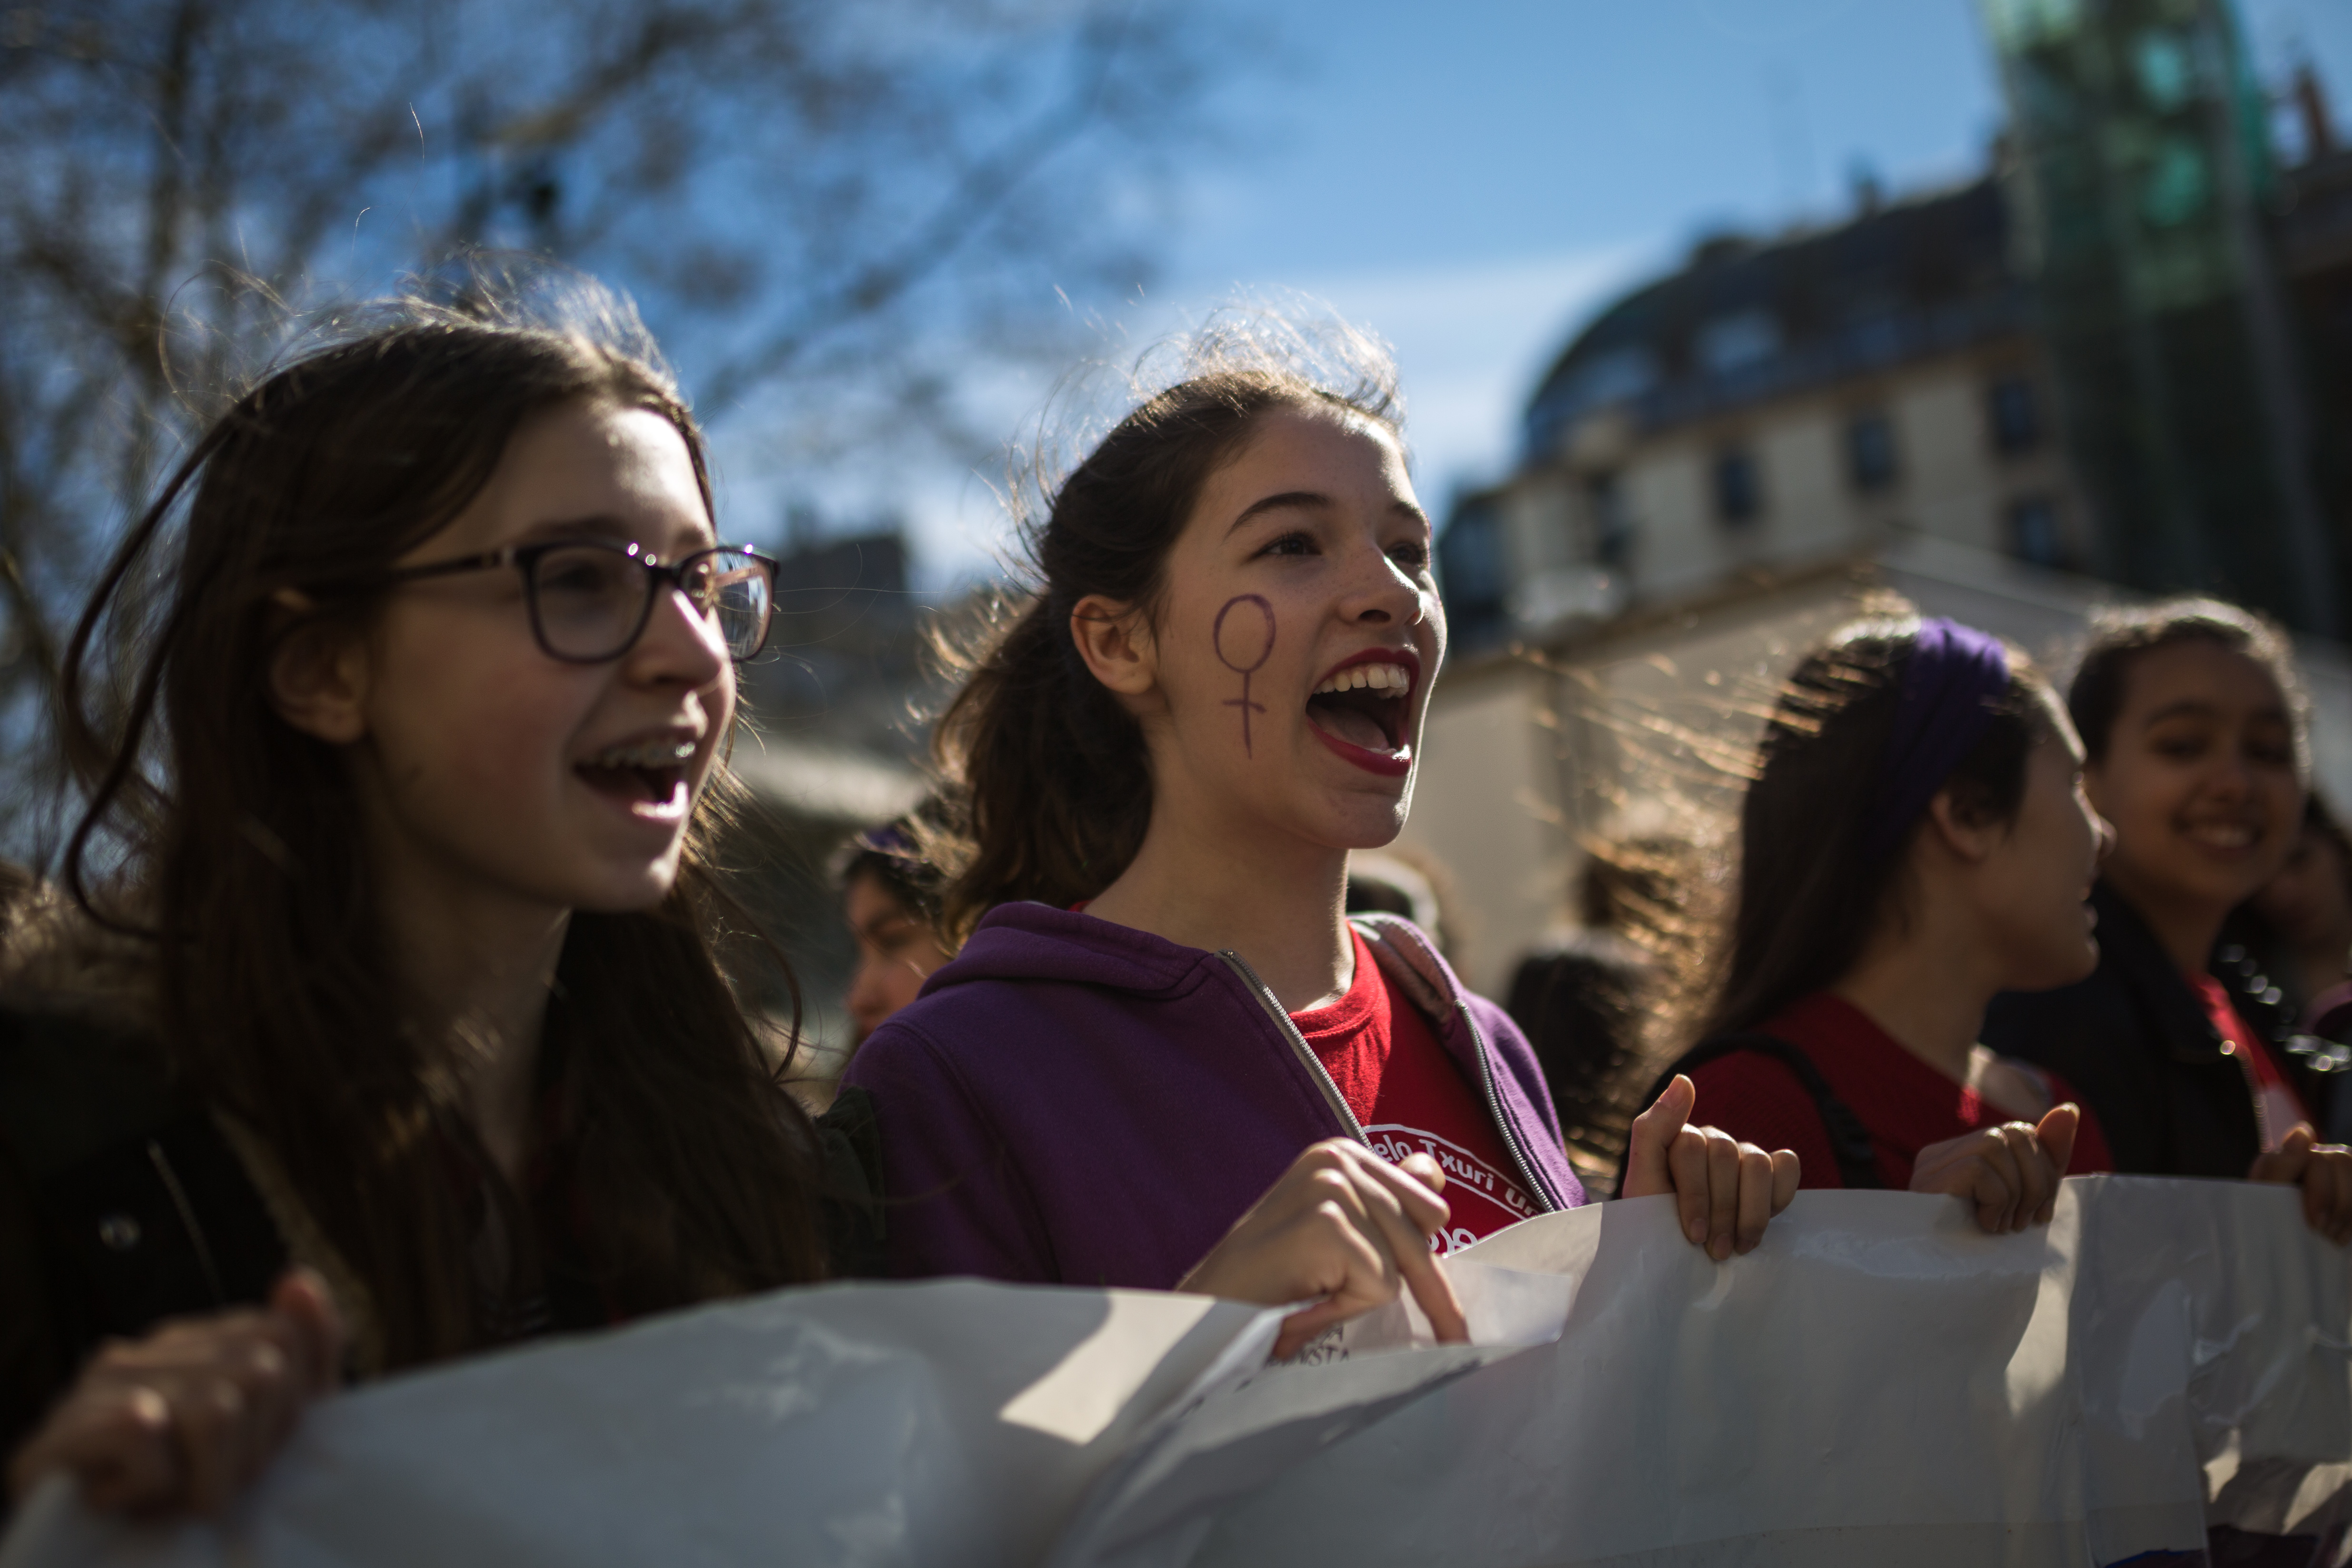 Several students carry a banner during demonstrations of the feminist general strike in the streets of San Sebastian on March 8, 2018.